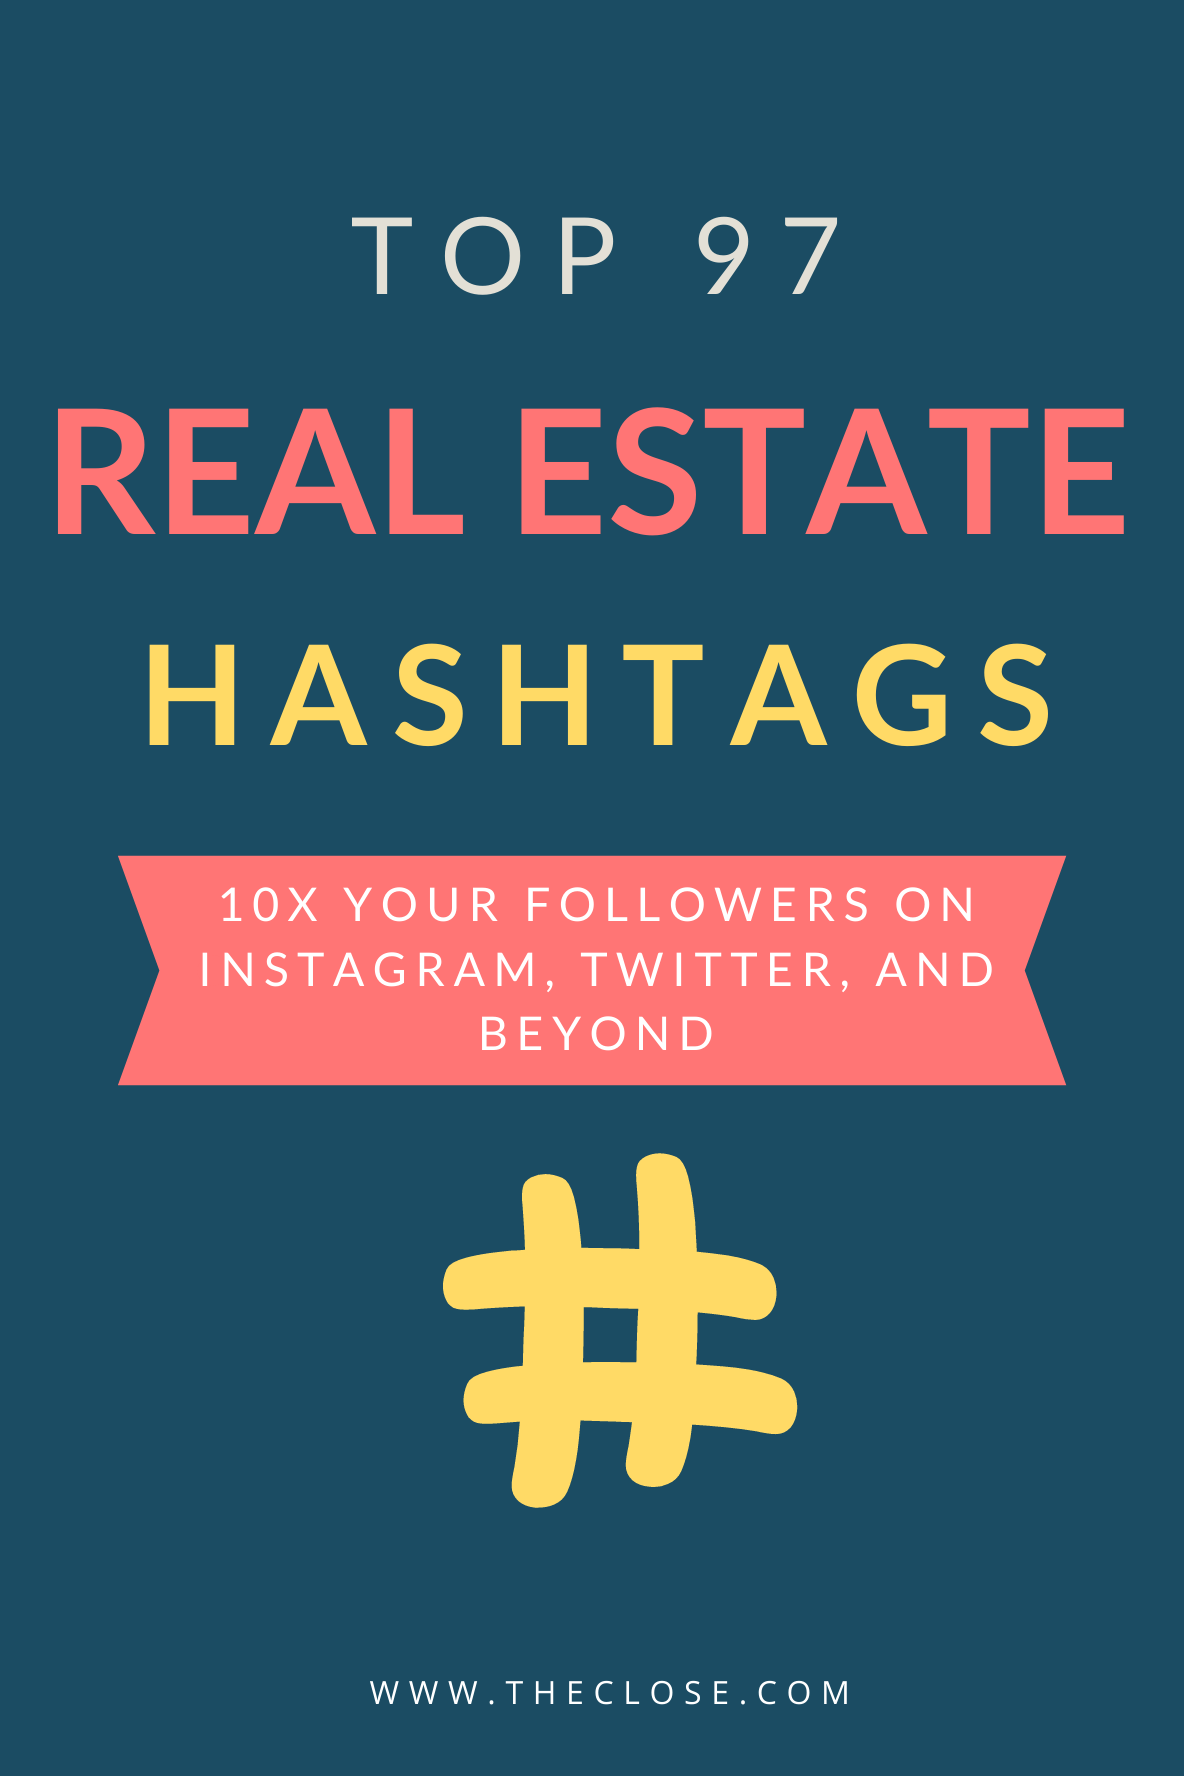 Here are real estate hashtag strategies that will help you 10x your followers on Instagram, Twitter, and beyond. #realestate #sign #ideas #popular #togainfollowers #best #socialmedia #theclose